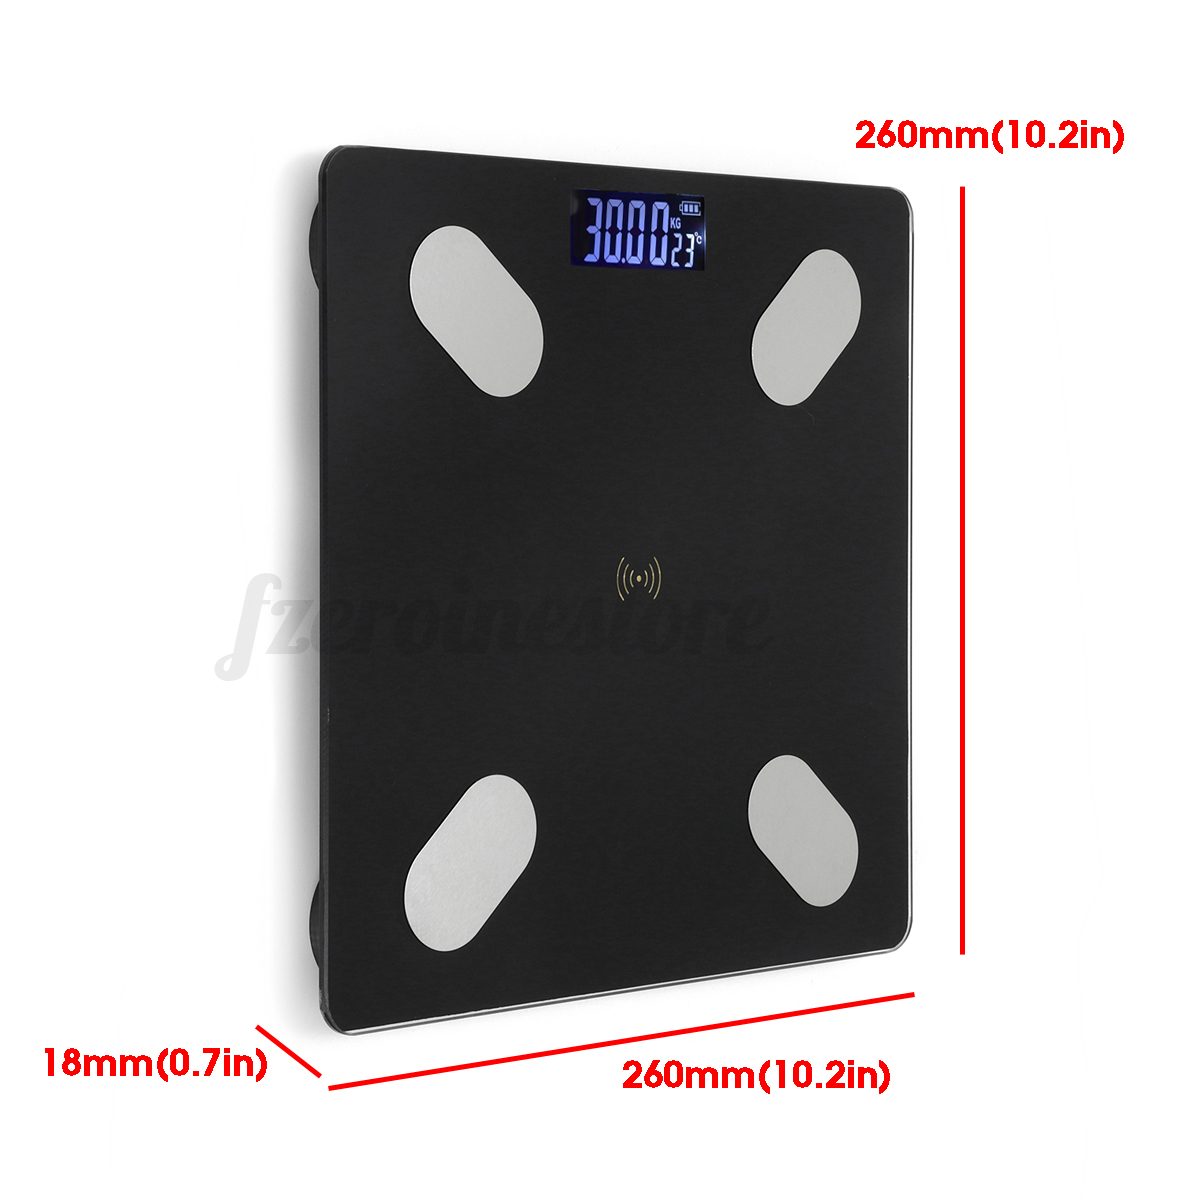 LED-bluetooth-Wireless-Digital-Bathroom-Weight-Scale-Body-Fat-Measures-Weight thumbnail 11